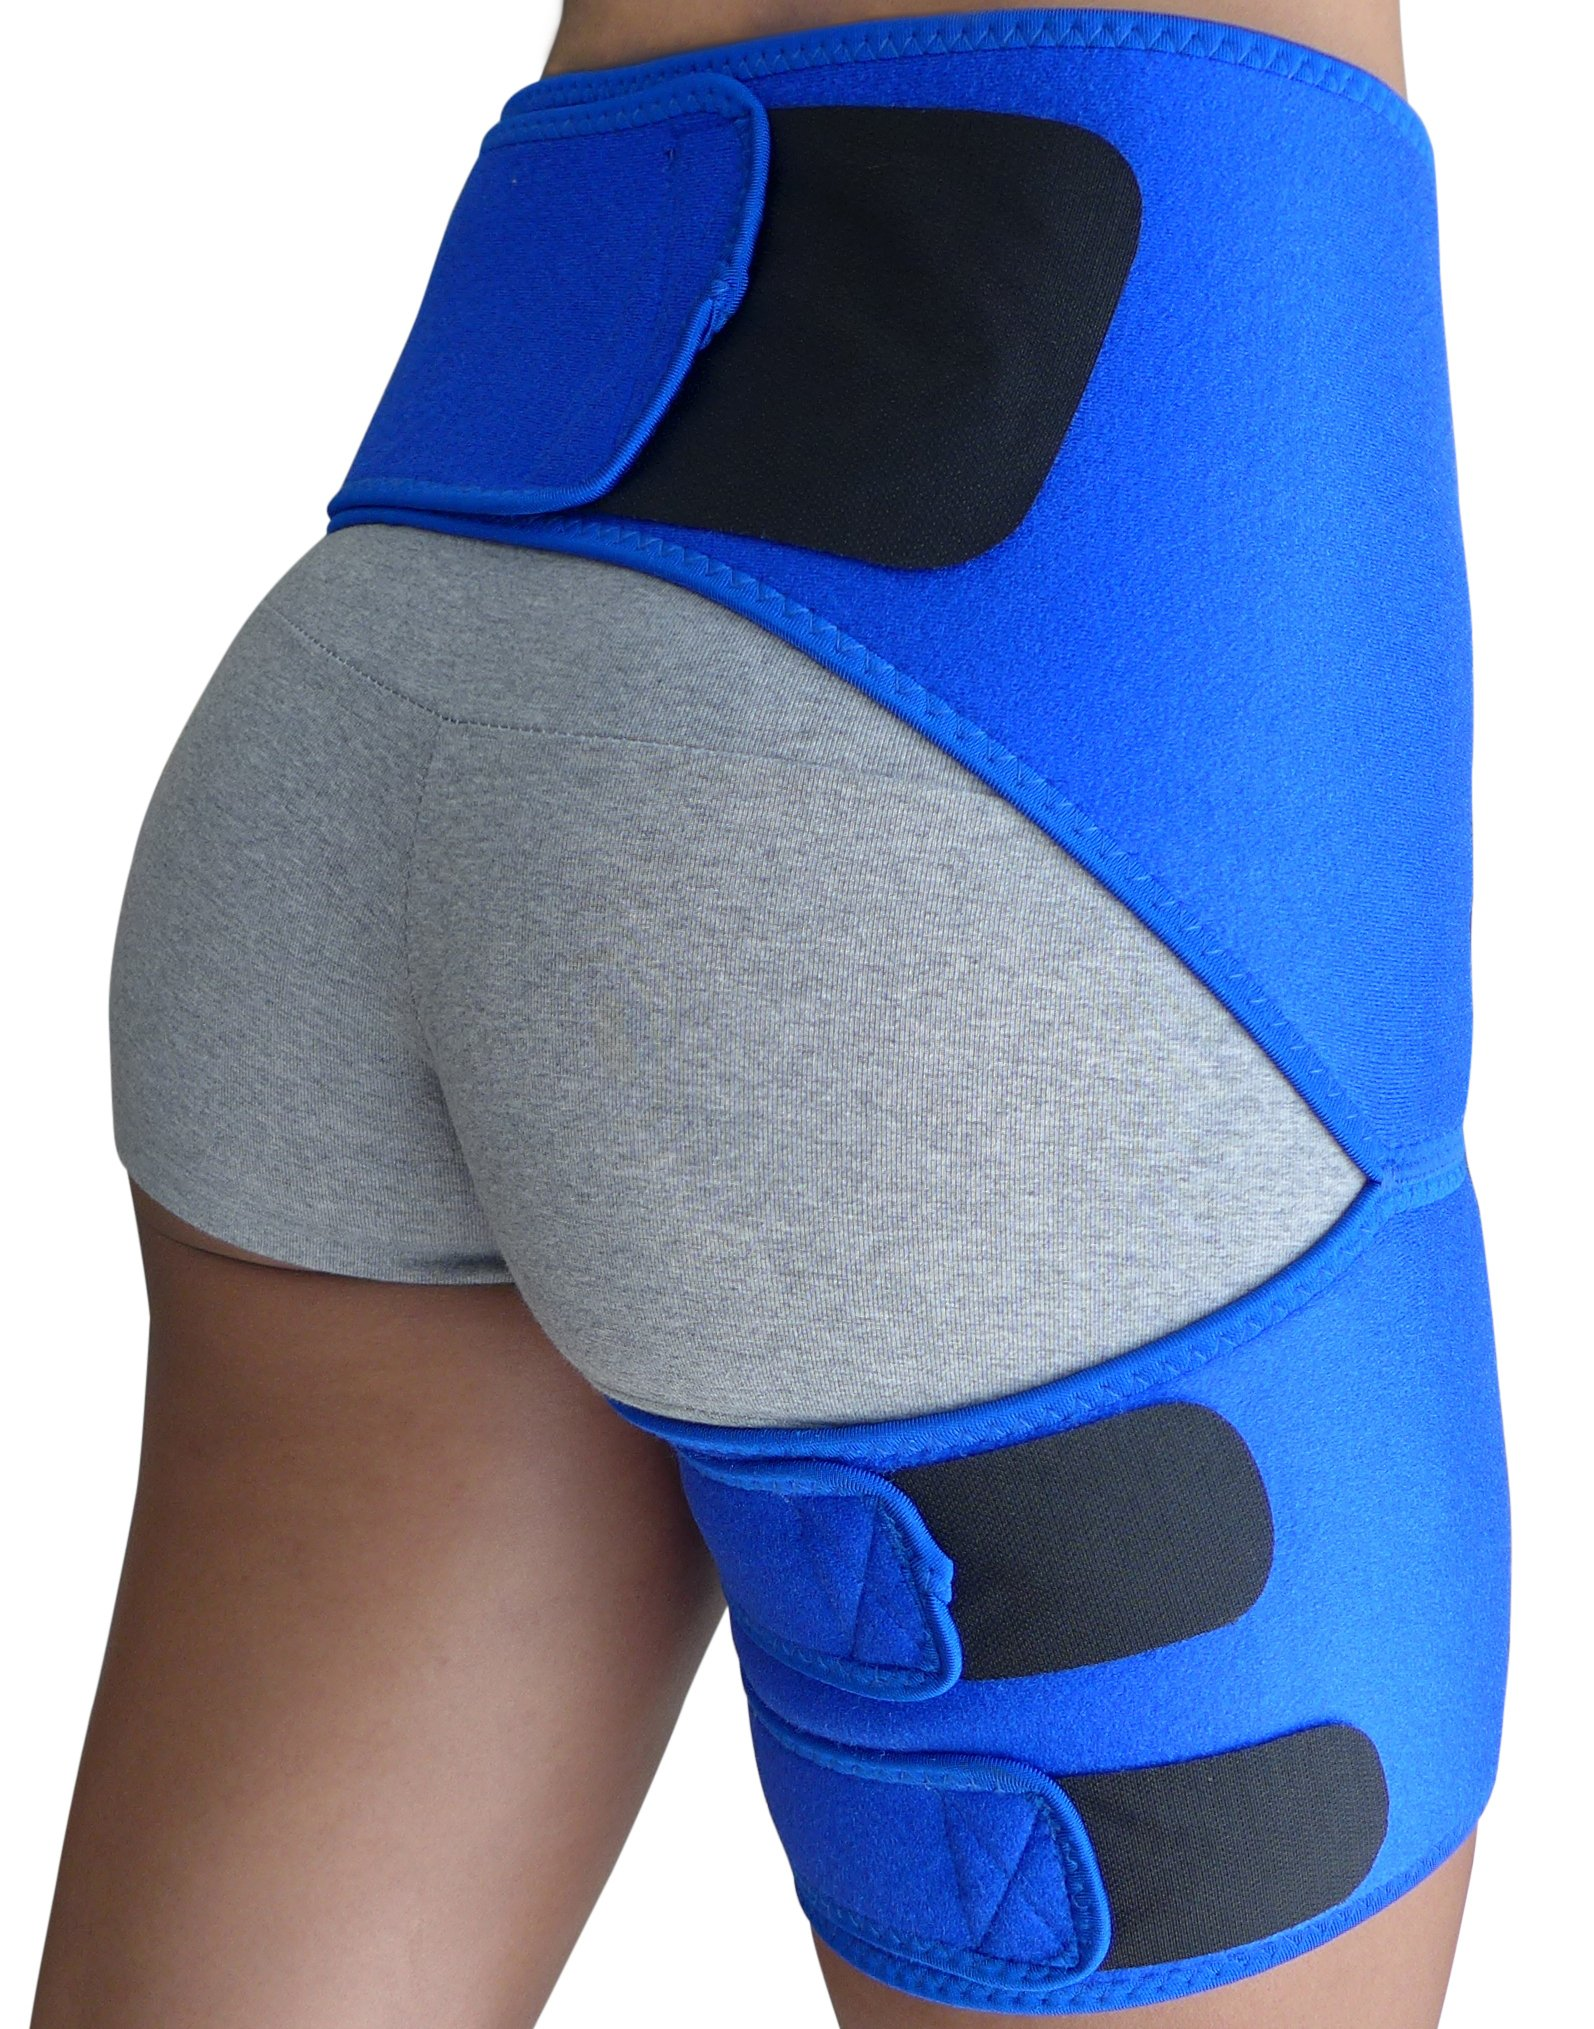 Hip Brace - Groin Support for Sciatica Pain Relief Thigh Hamstring Quadriceps Hip Arthritis SI Joint Injuries Hip Flexor Pulled Muscles - Compression Groin Wrap - Best Sciatic Brace Belt Men Women by Roxofit